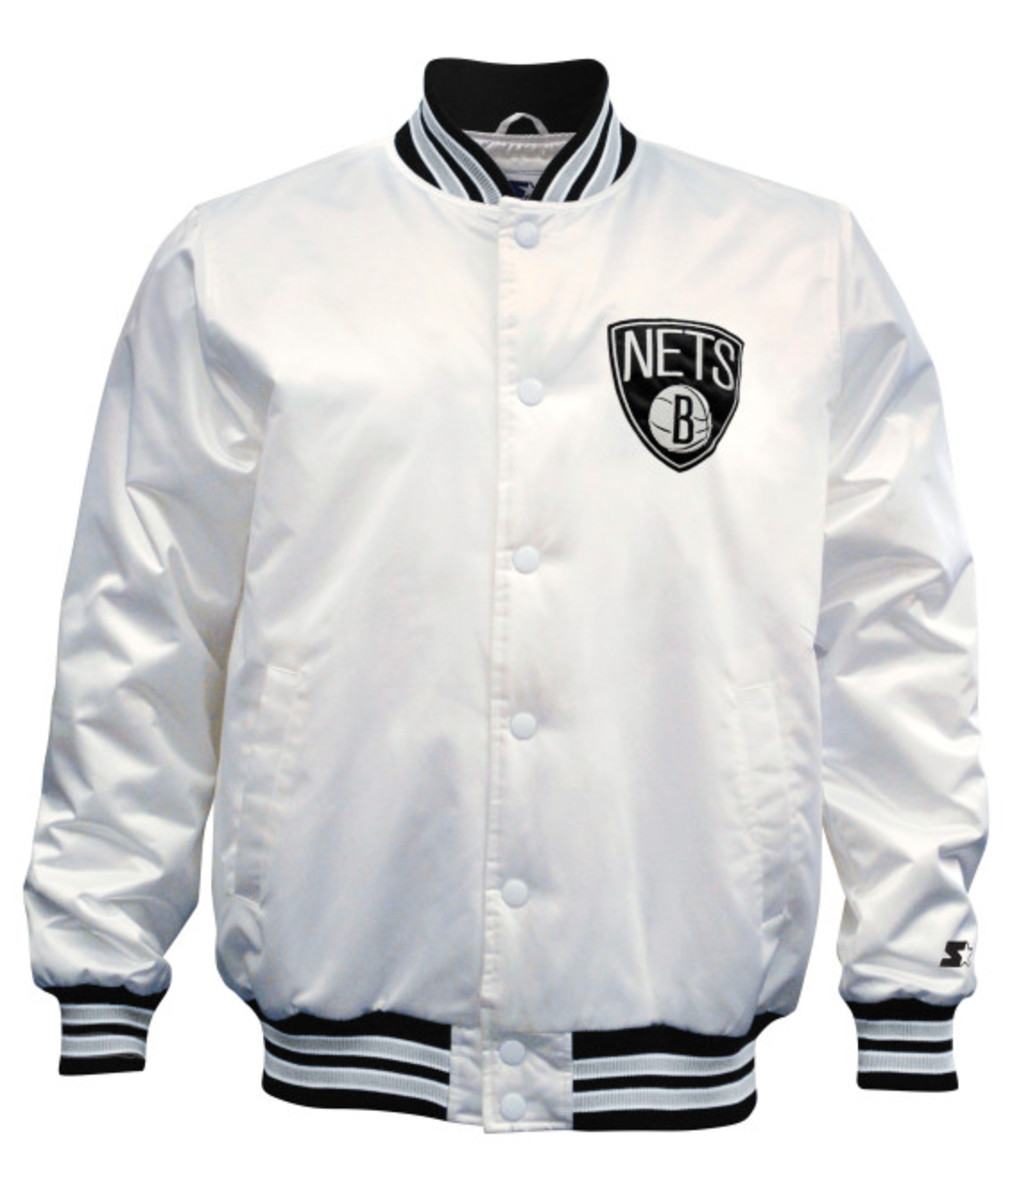 Starter – New York Knicks & Brooklyn Nets Limited Edition Satin Jacket in Christmas White - 3